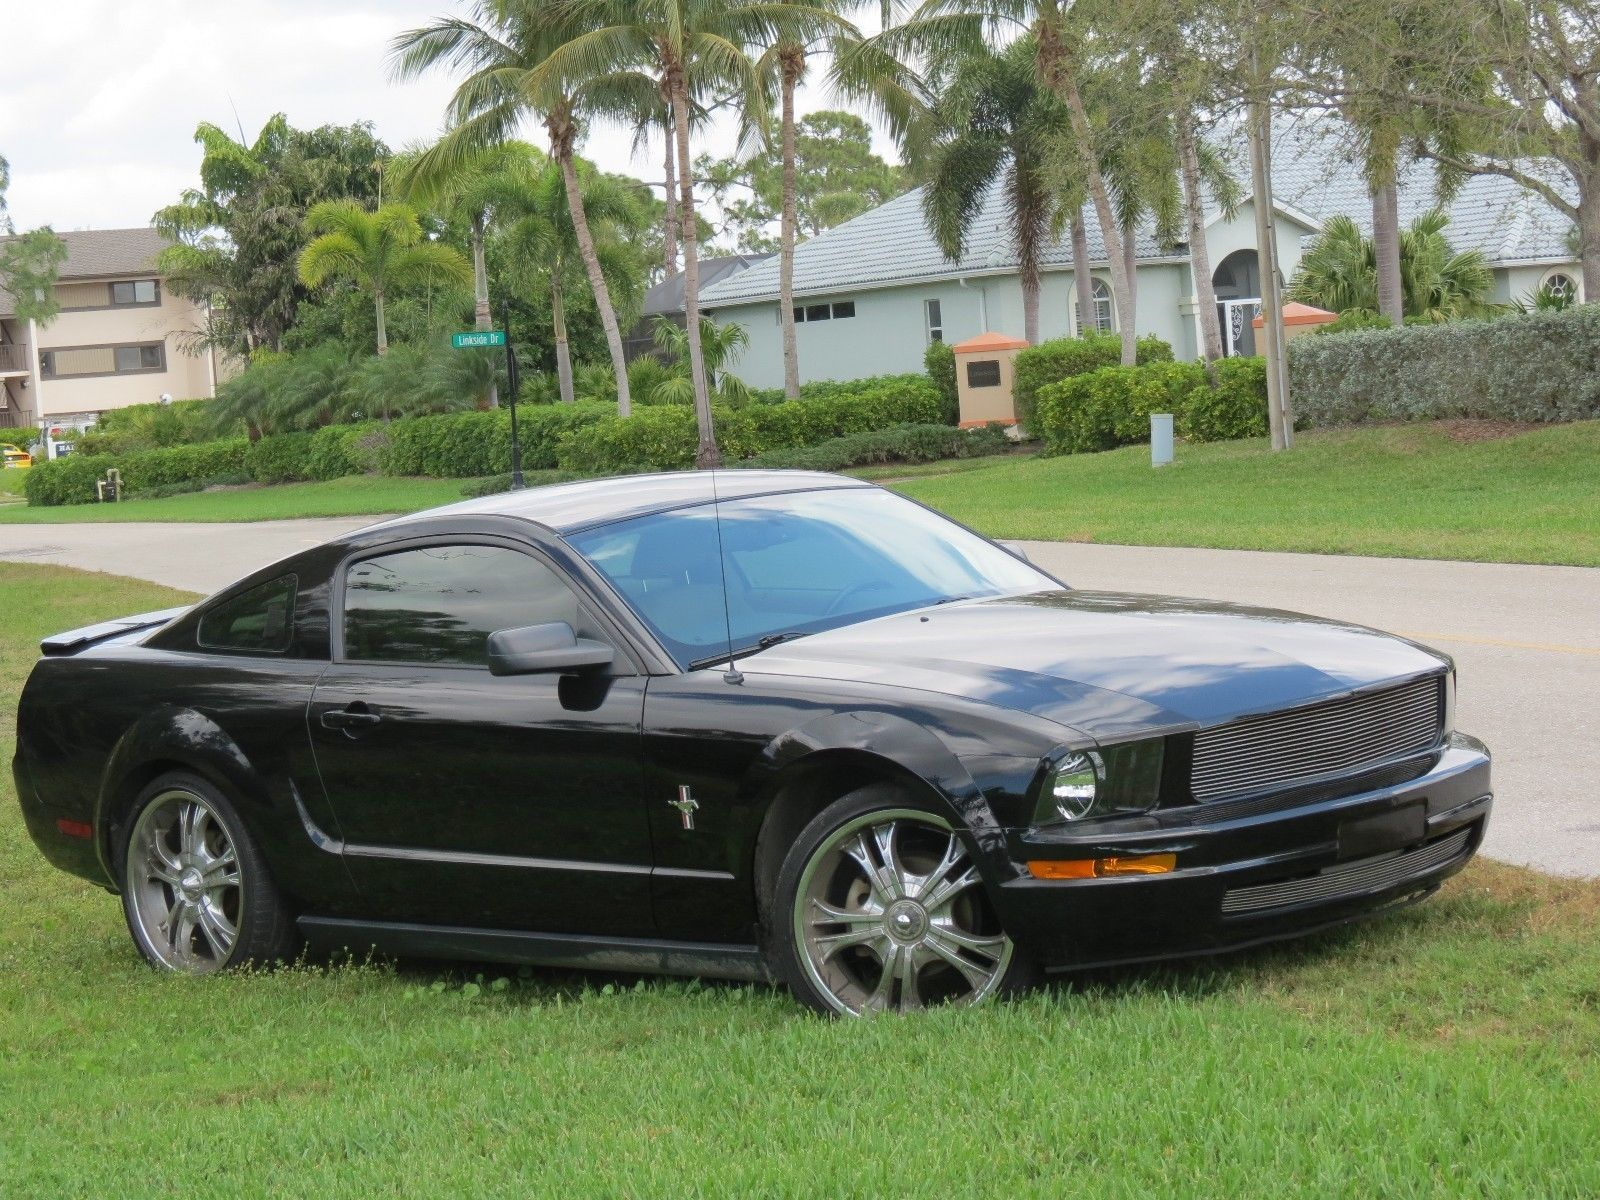 eBay: 2007 Ford Mustang Black 2007 Mustang Foose Grill Low Profile Tires  Low 78,457 miles